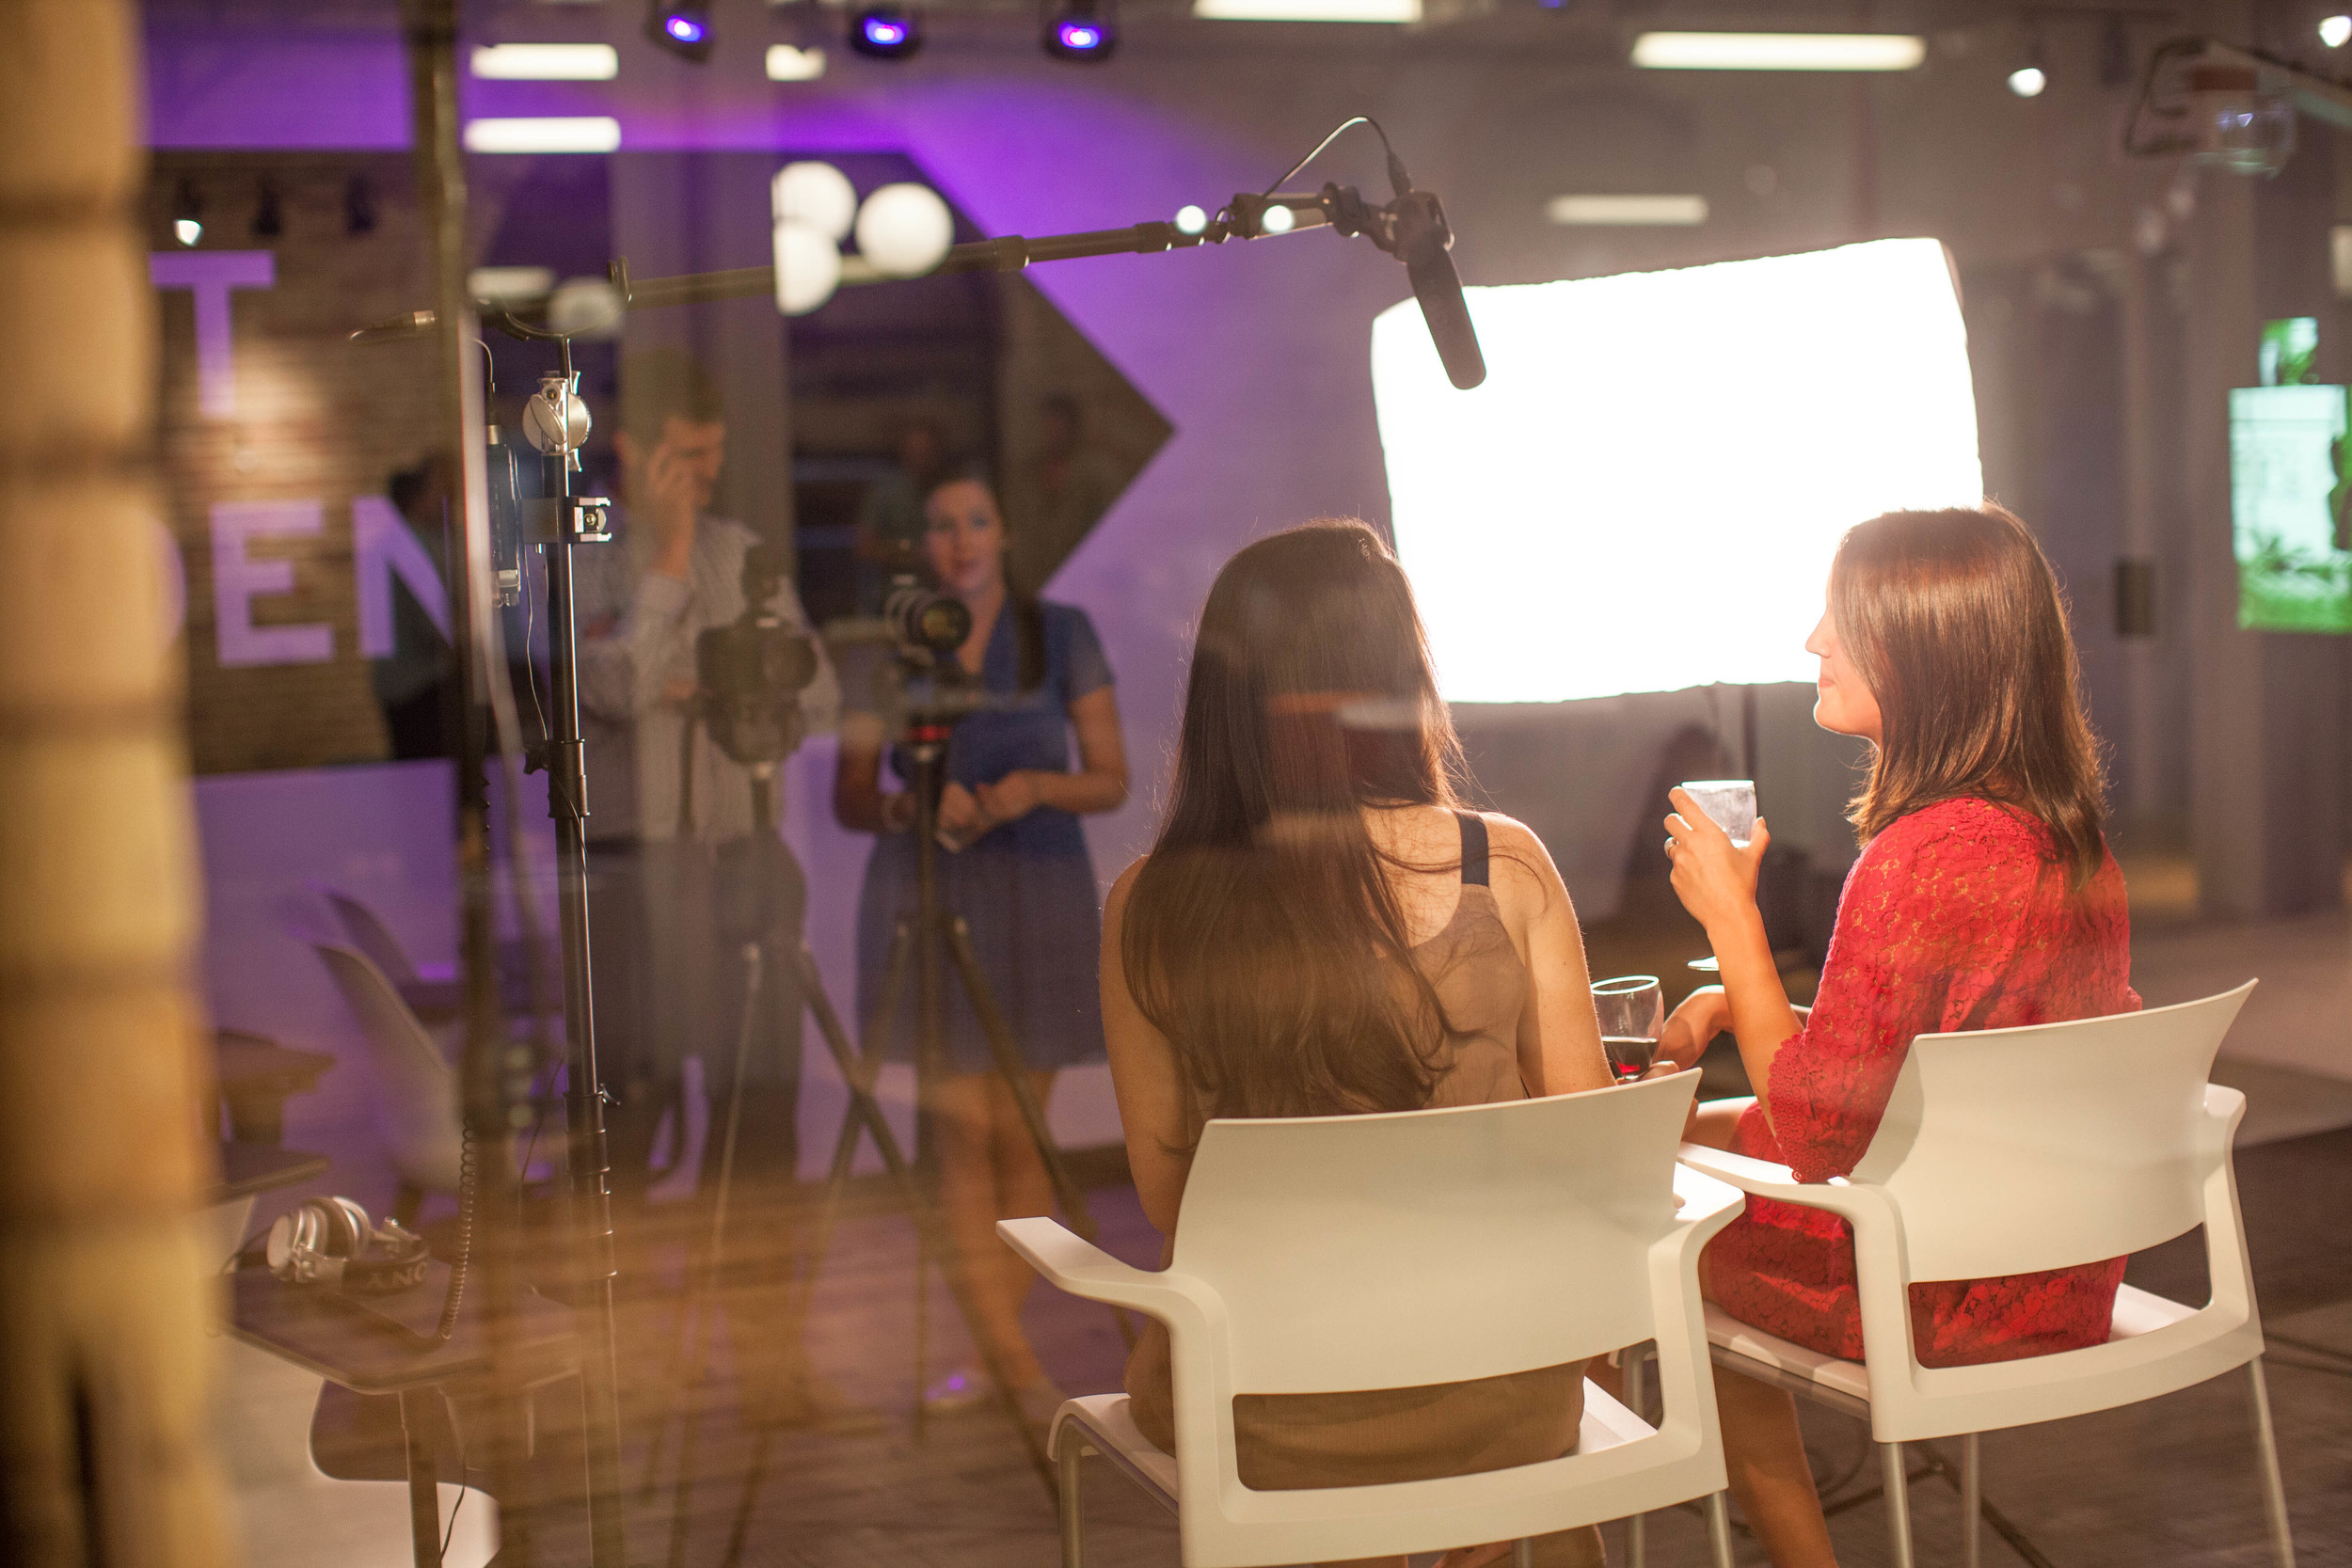 BRIAN AND STACEY INTERVIEWING BRIDESMAIDS CHELSEA AND AMANDA. PHOTO BY JAMES RICHARD FRY.